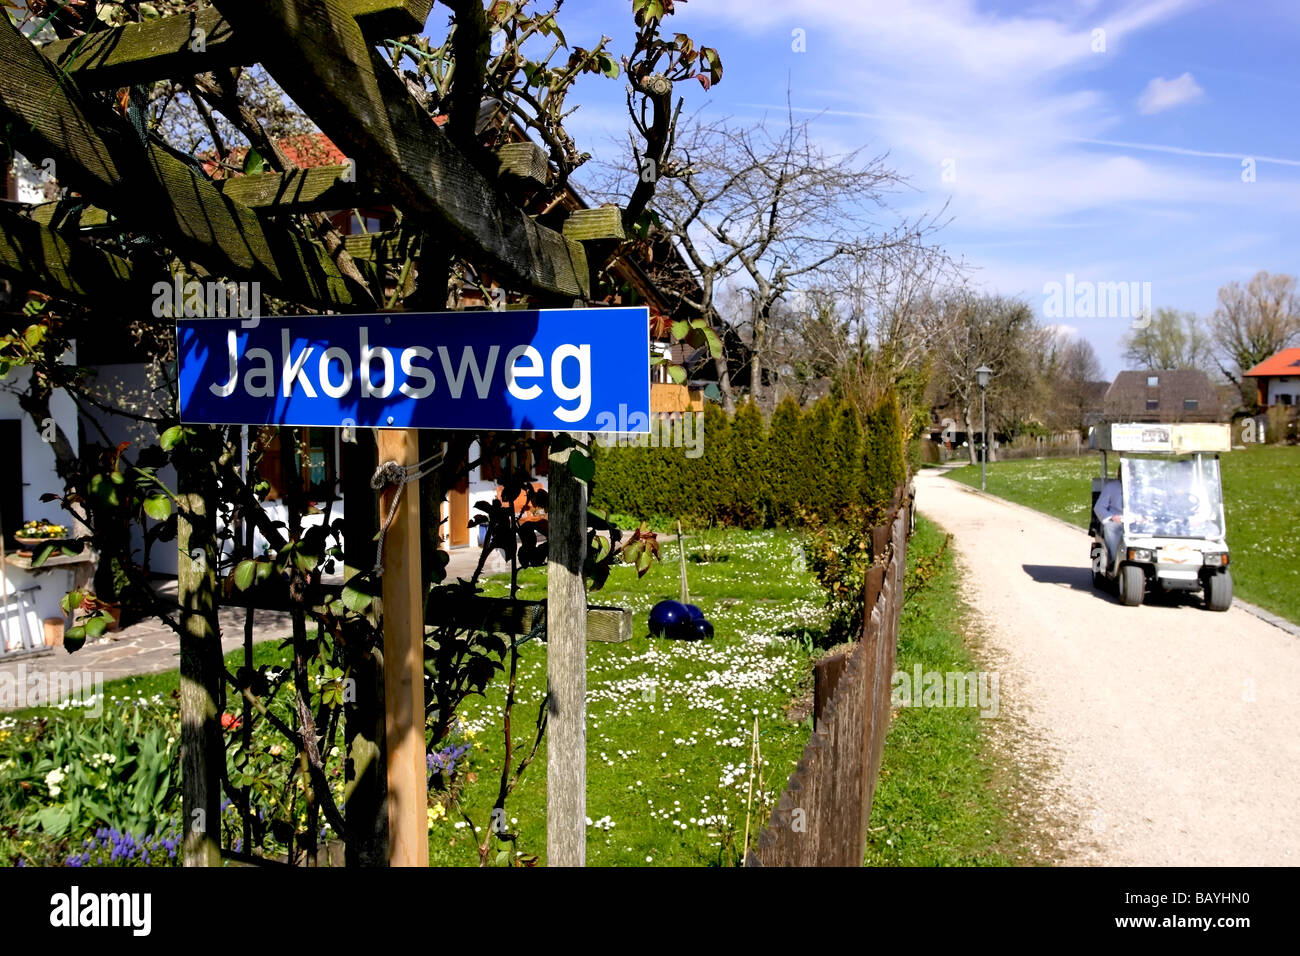 Jacobsweg Street Sign and Electric Goods Delivery Vehicle Fraueninsel Chiemsee Chiemgau Bavaria Germany, Europe Stock Photo